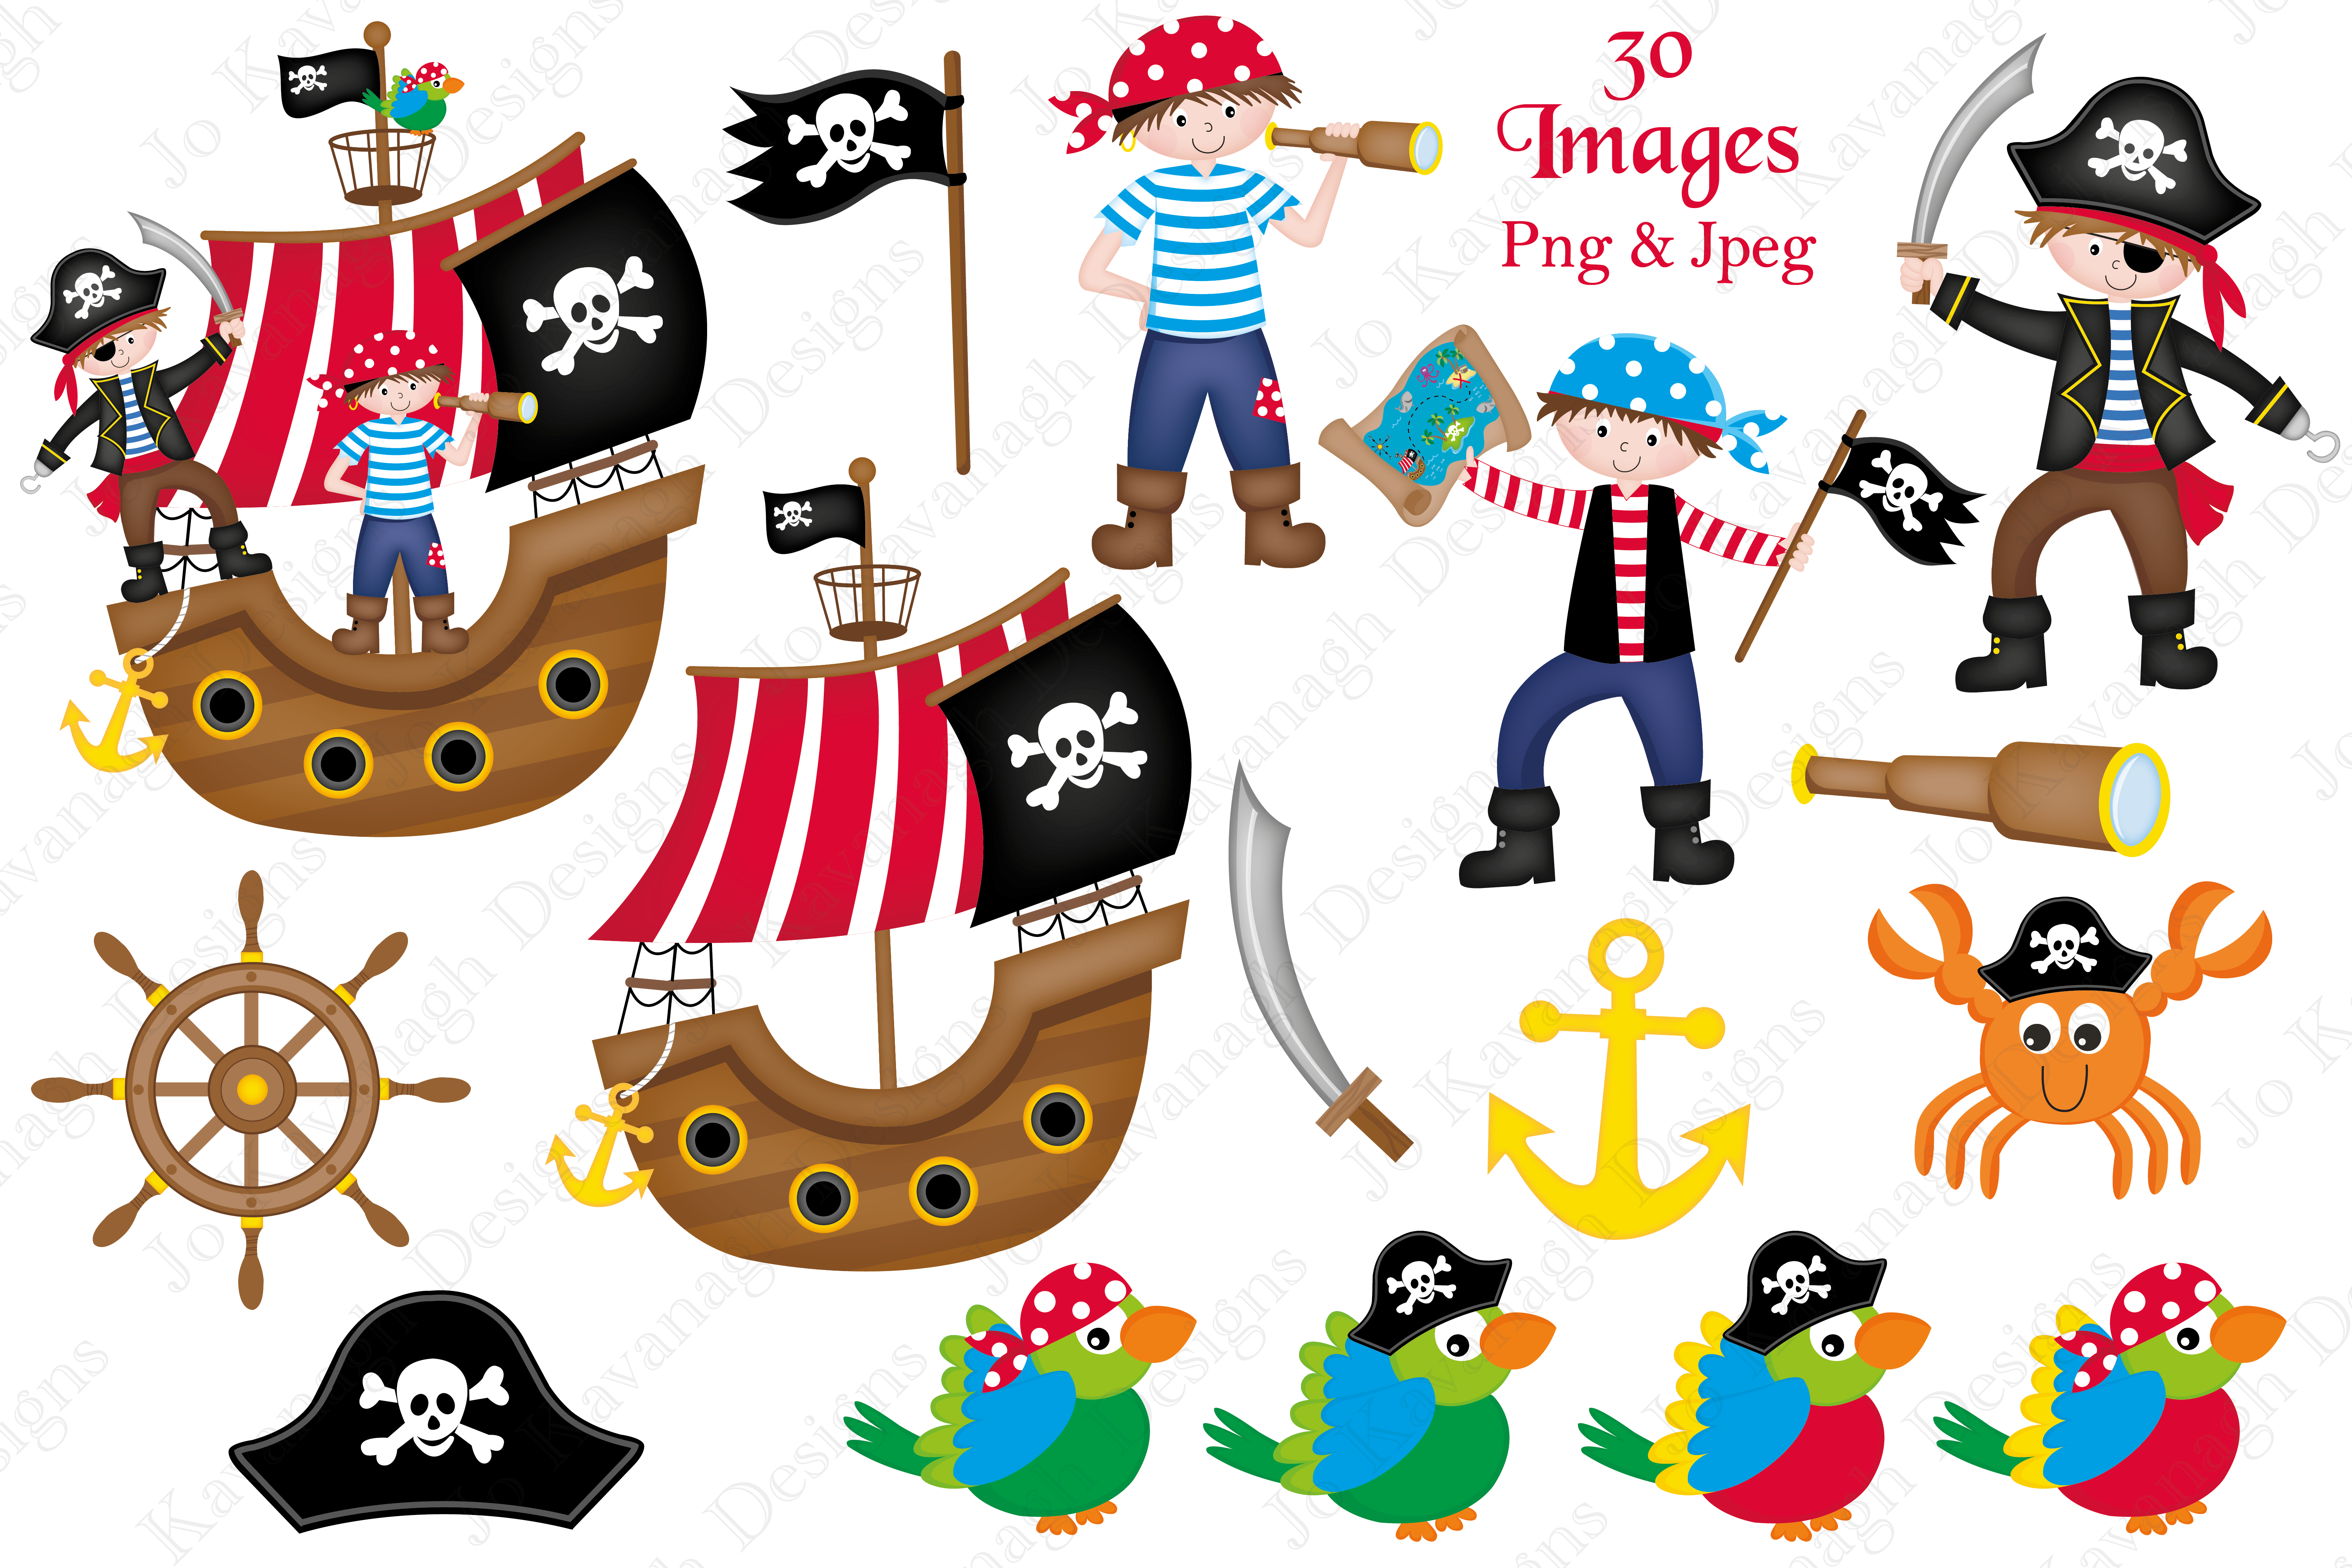 pirate clipart pirate graphics illus design bundles rh designbundles net pirate clipart no background pirate clipart no background